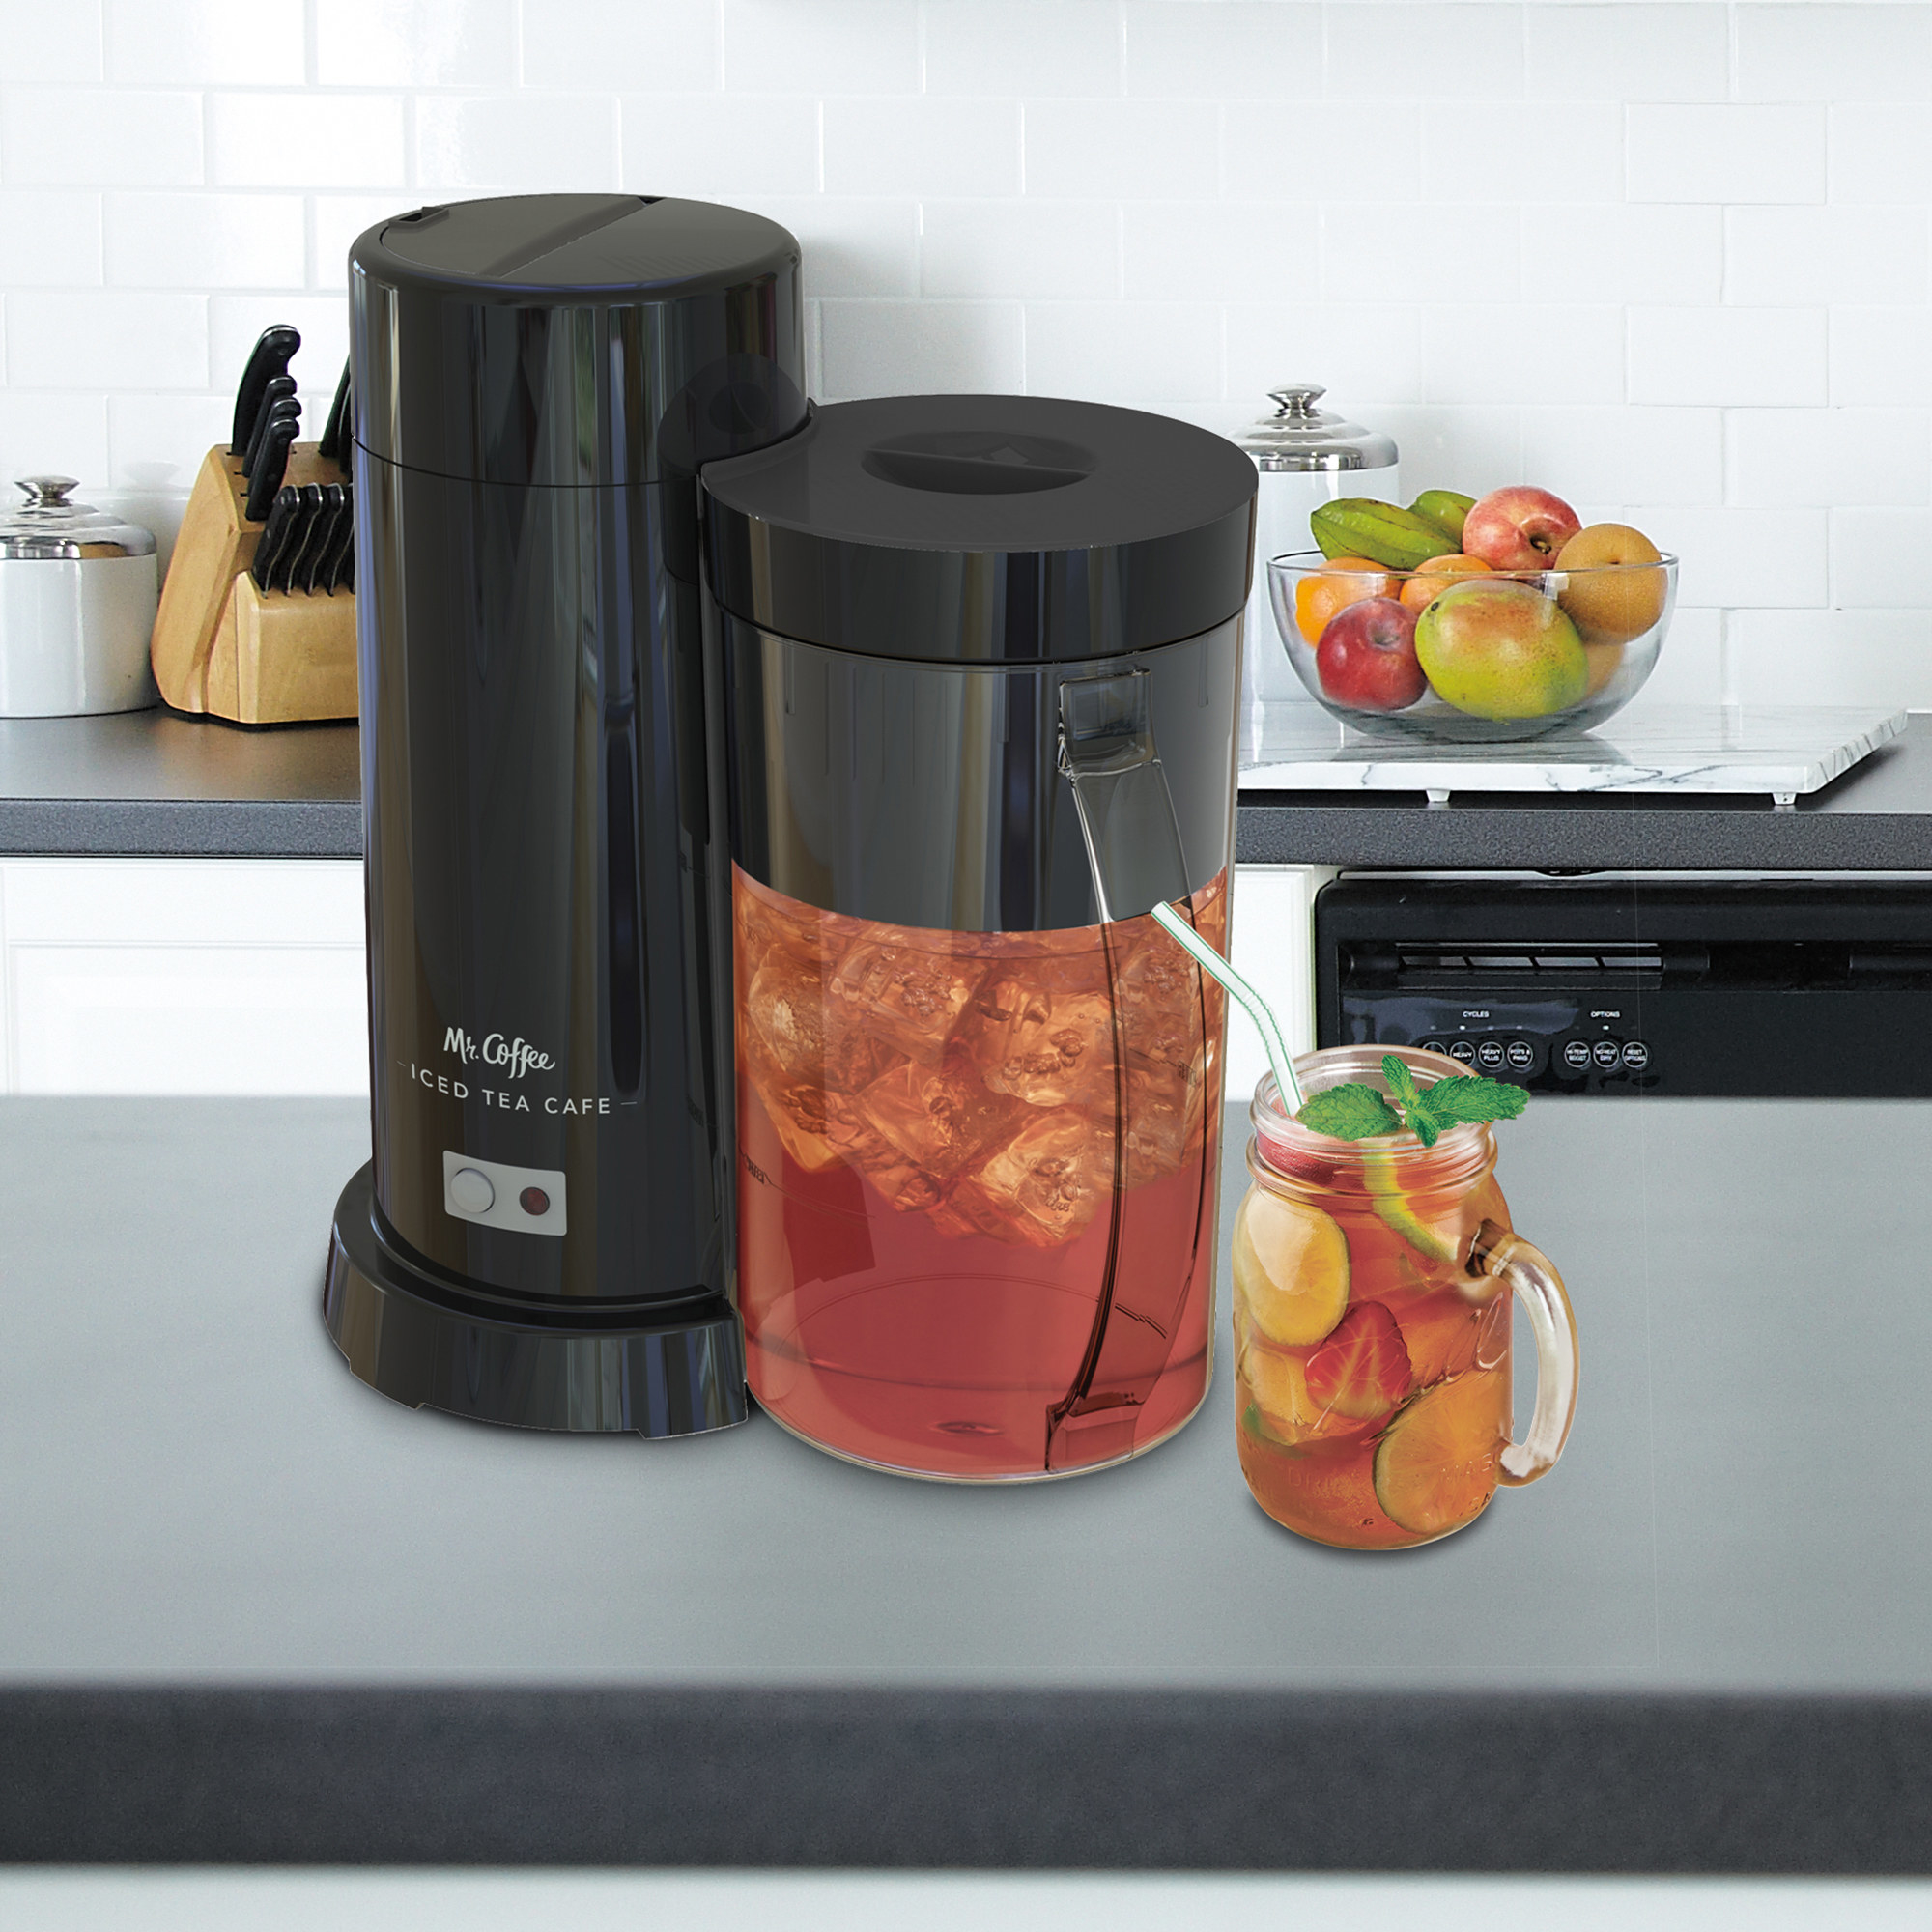 The iced tea and coffee maker